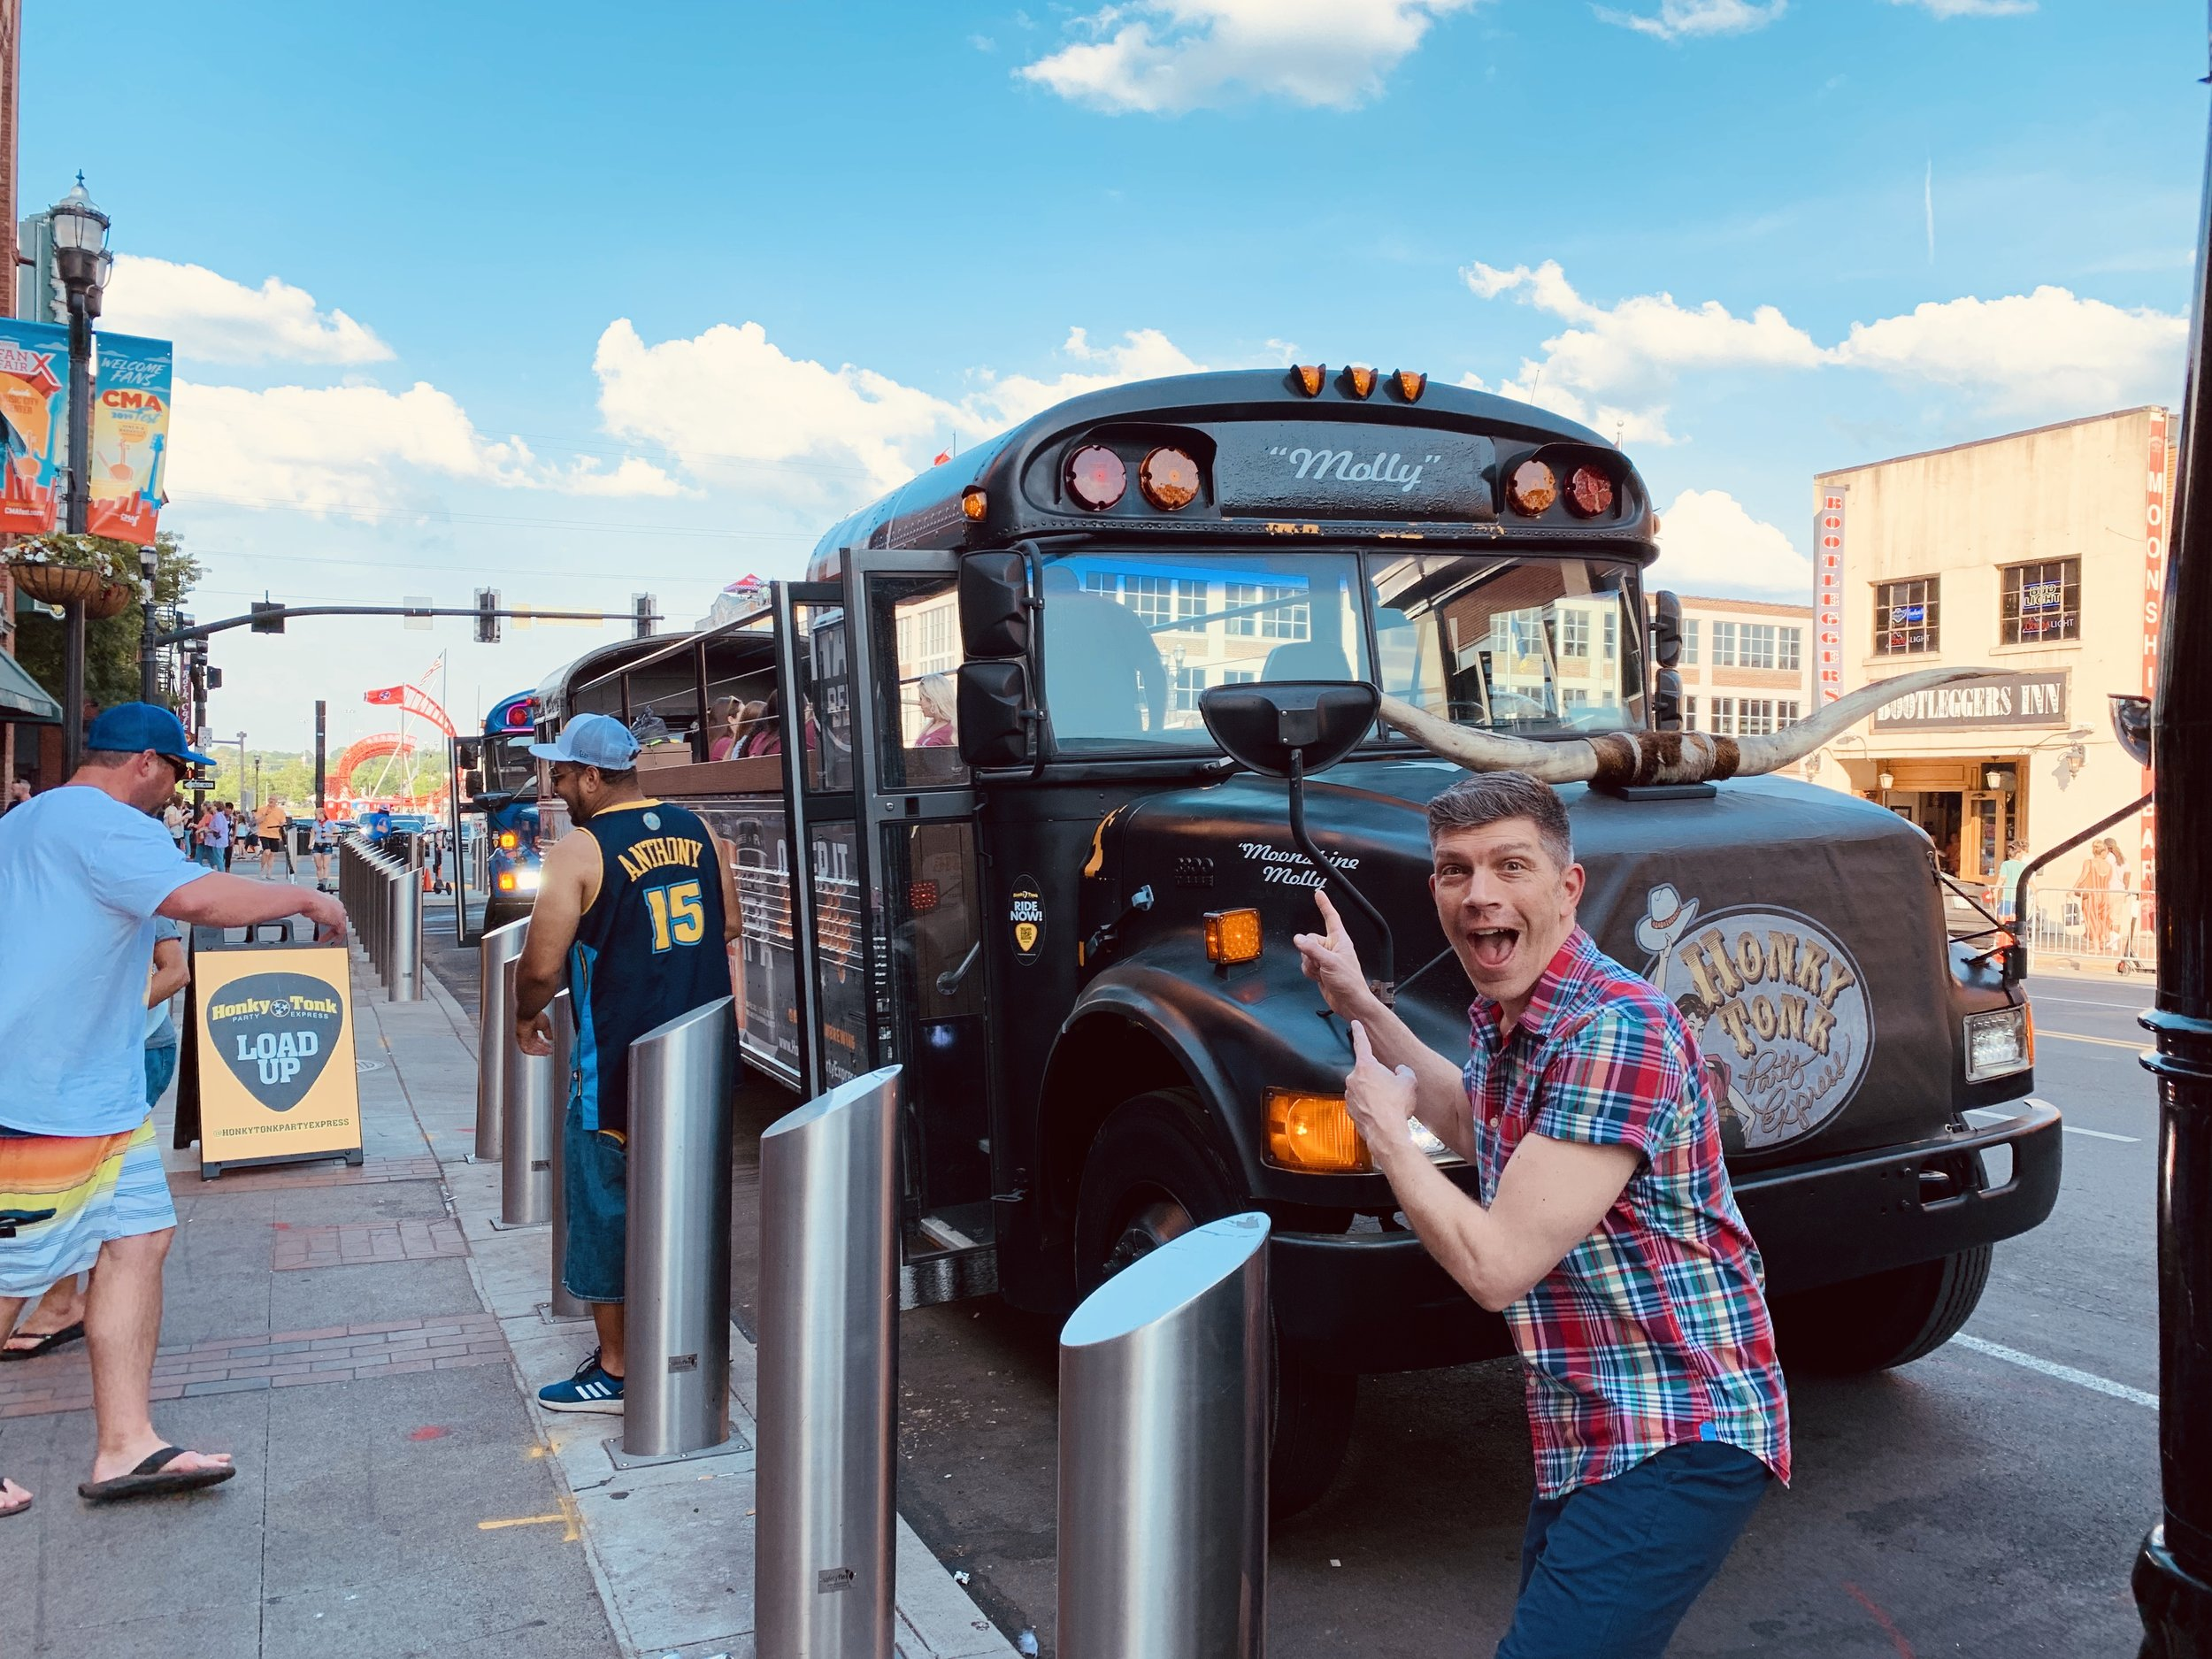 buses lose their tops in Nashville and are filled with Bridal parties…